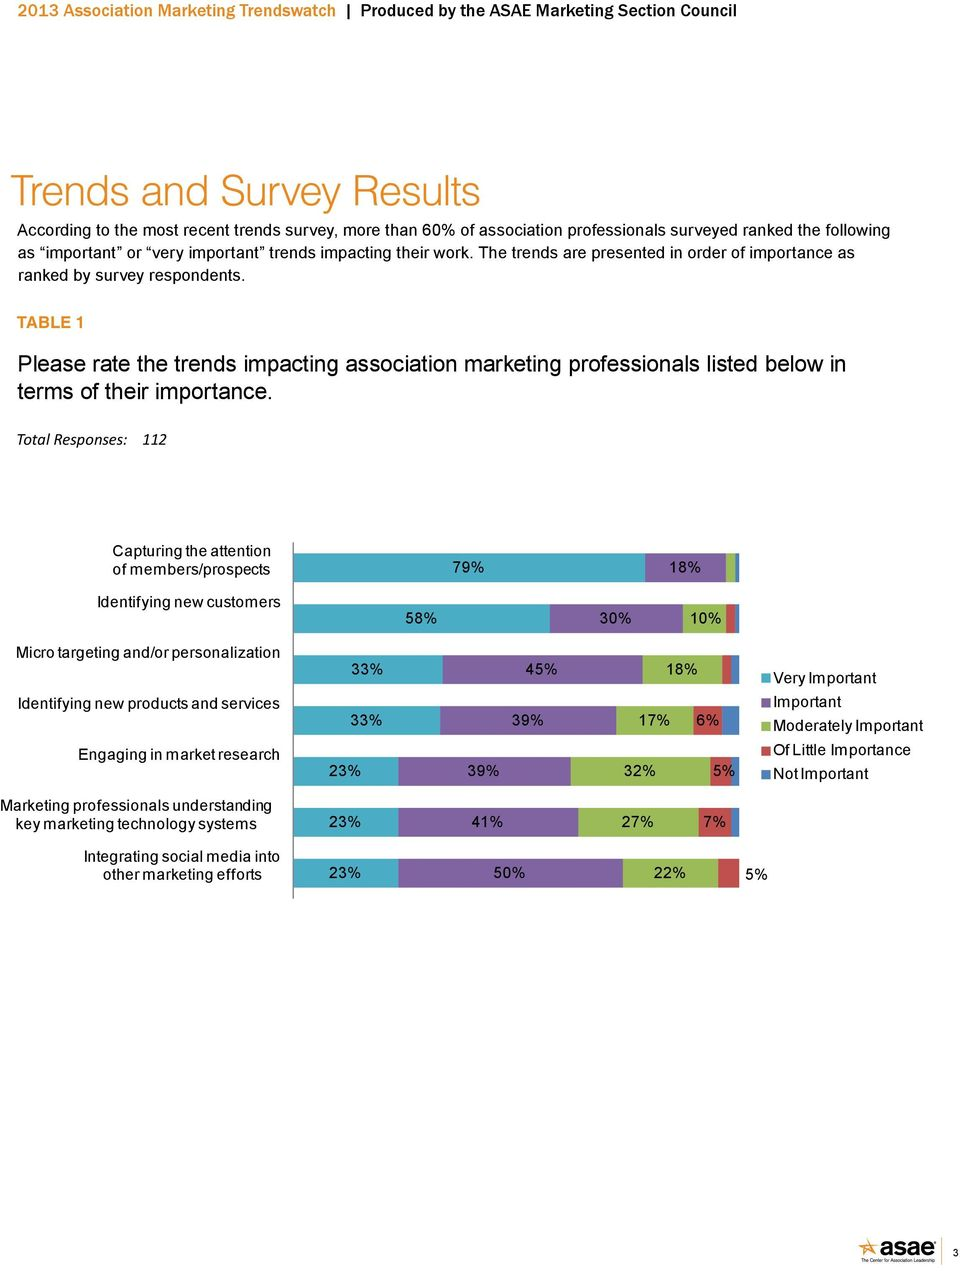 TABLE 1 Please rate the trends impacting association marketing professionals listed below in terms of their importance.